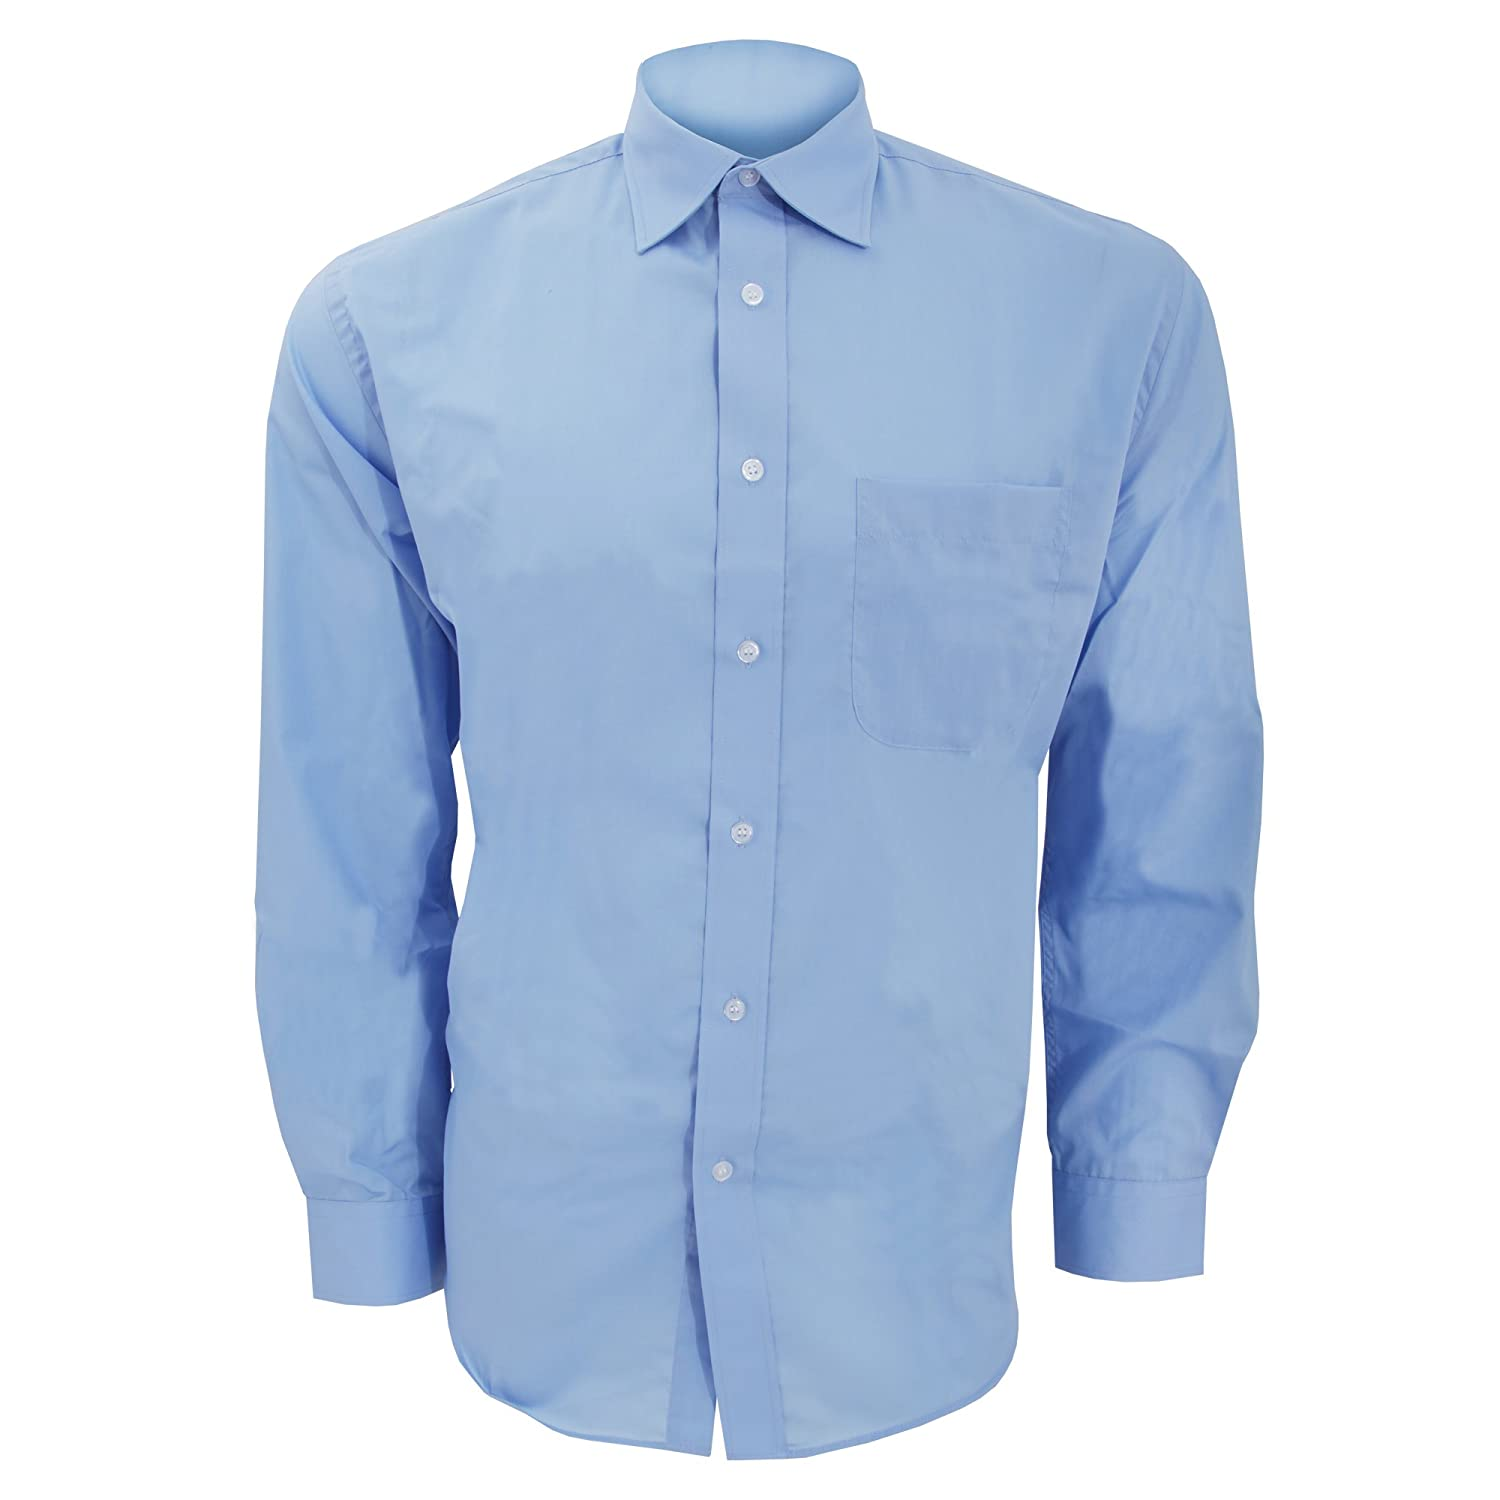 KUSTOM KIT Mens Long Sleeve Business Shirt